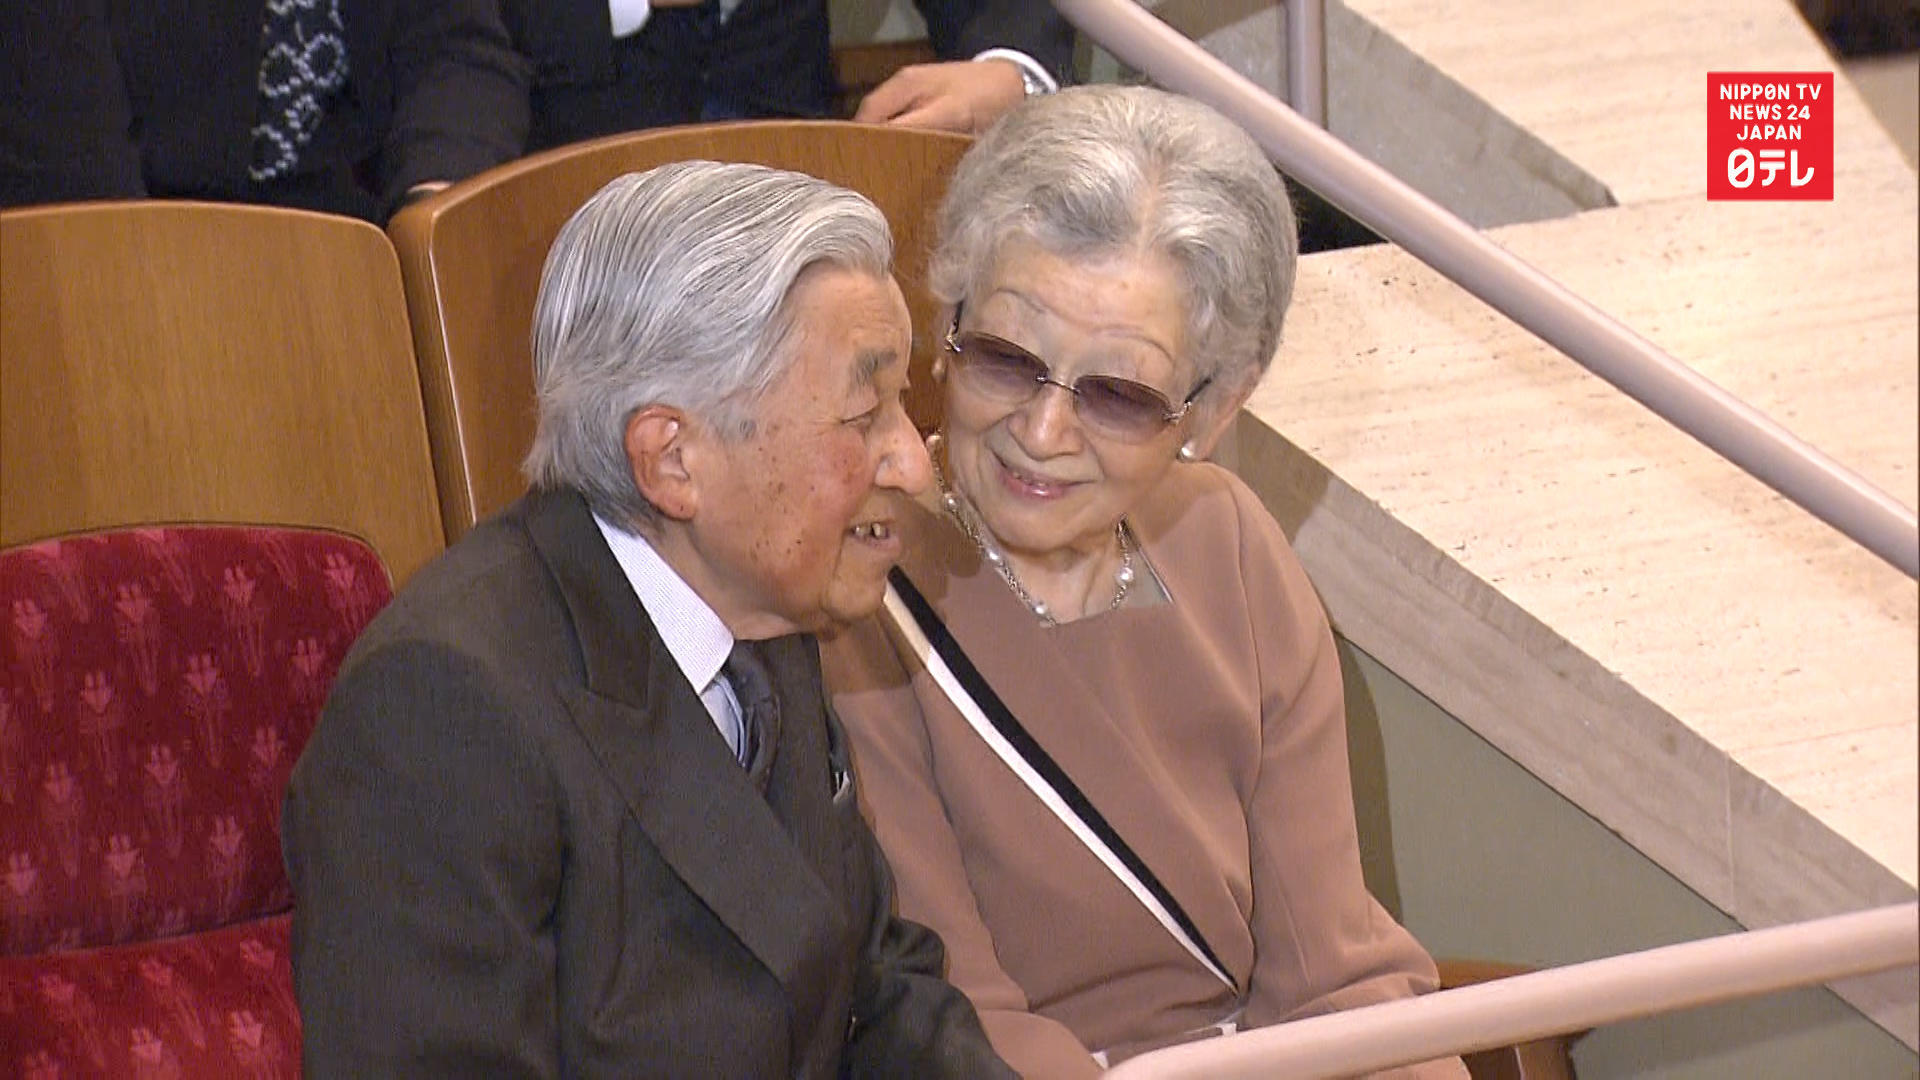 Former Imperial Couple takes in concert